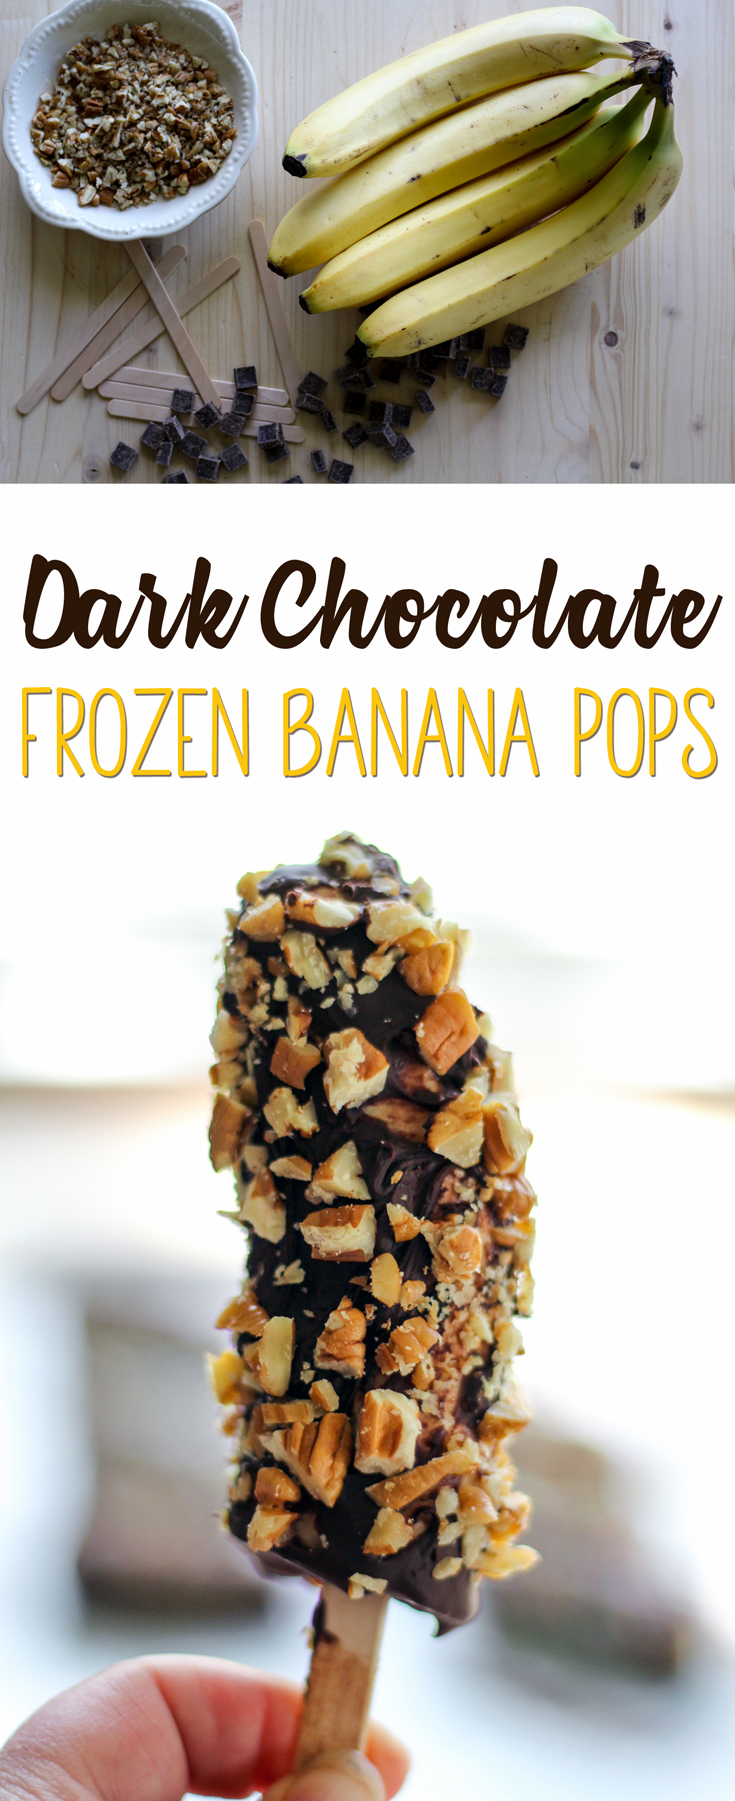 Frozen Banana Pops